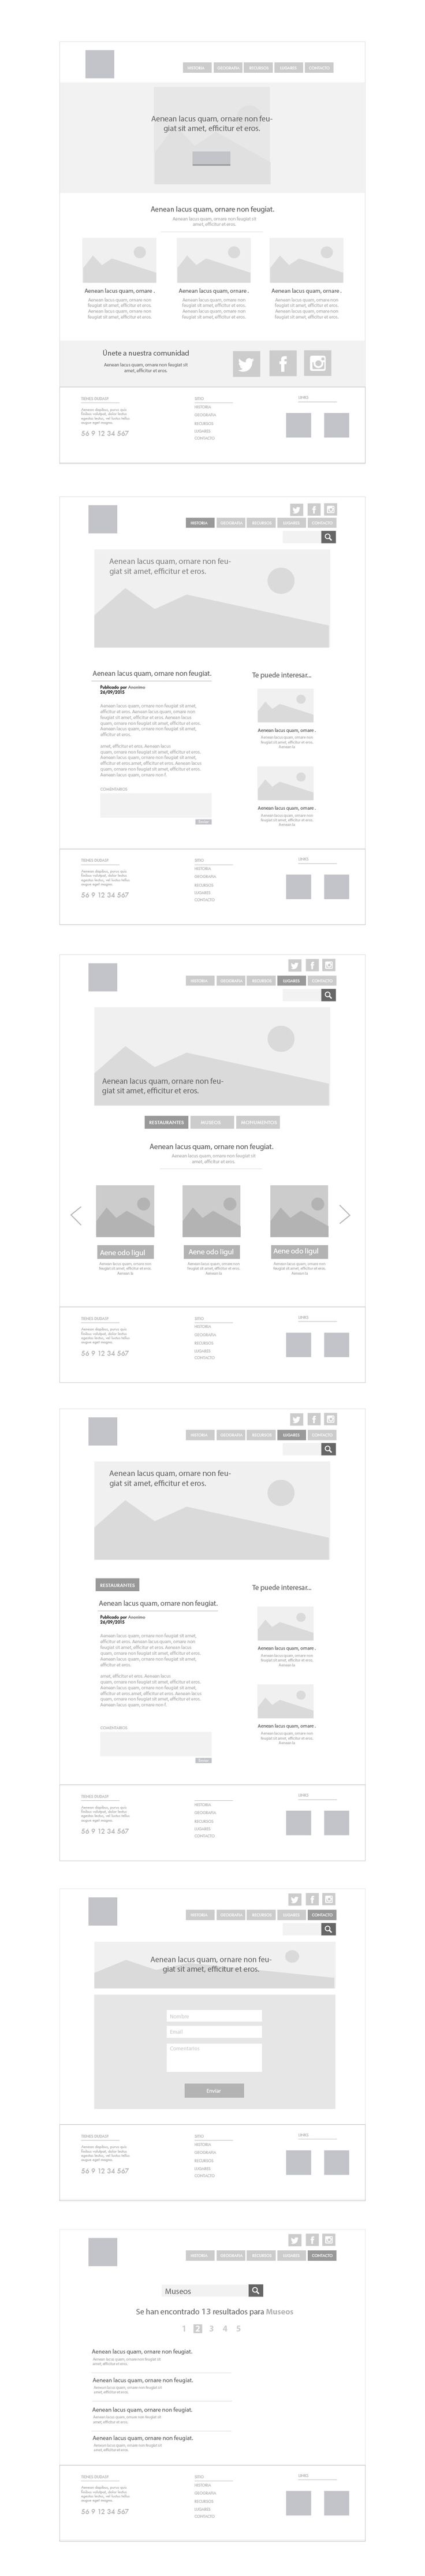 Wireframe Website - Illustrator